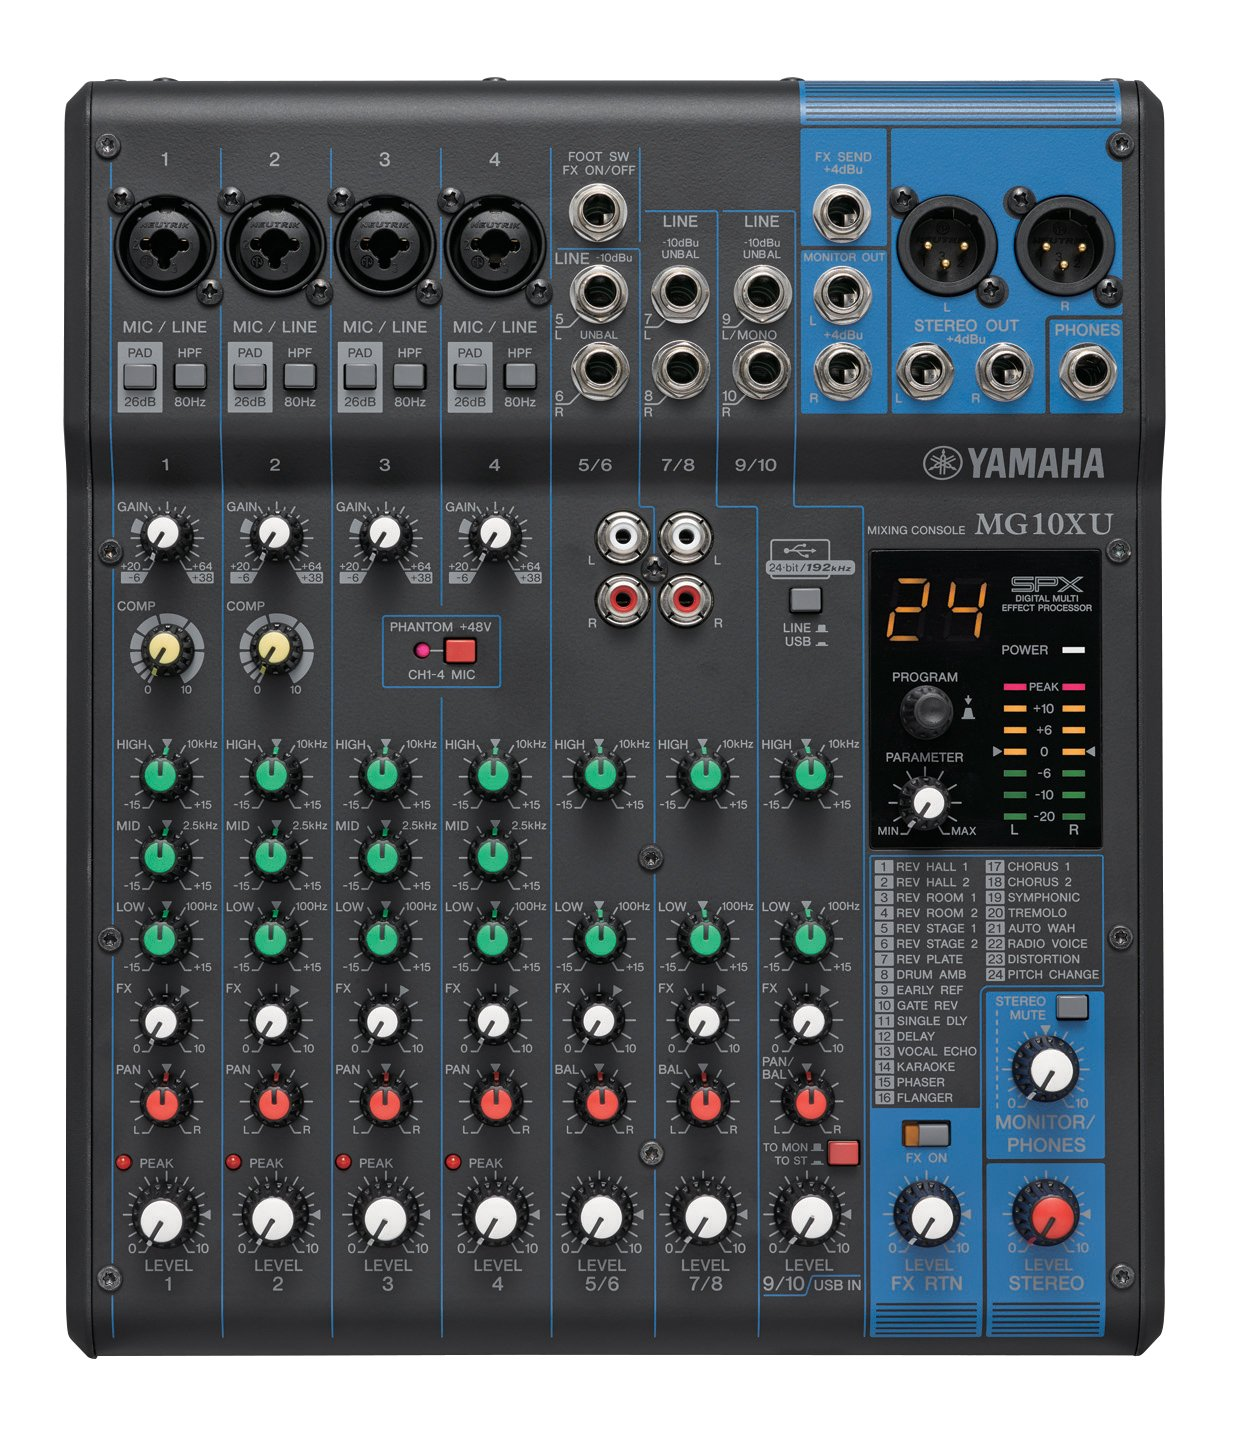 Redshifter's Gadget Reviews: Yamaha MG10XU 10-input Stereo Mixer with Effects